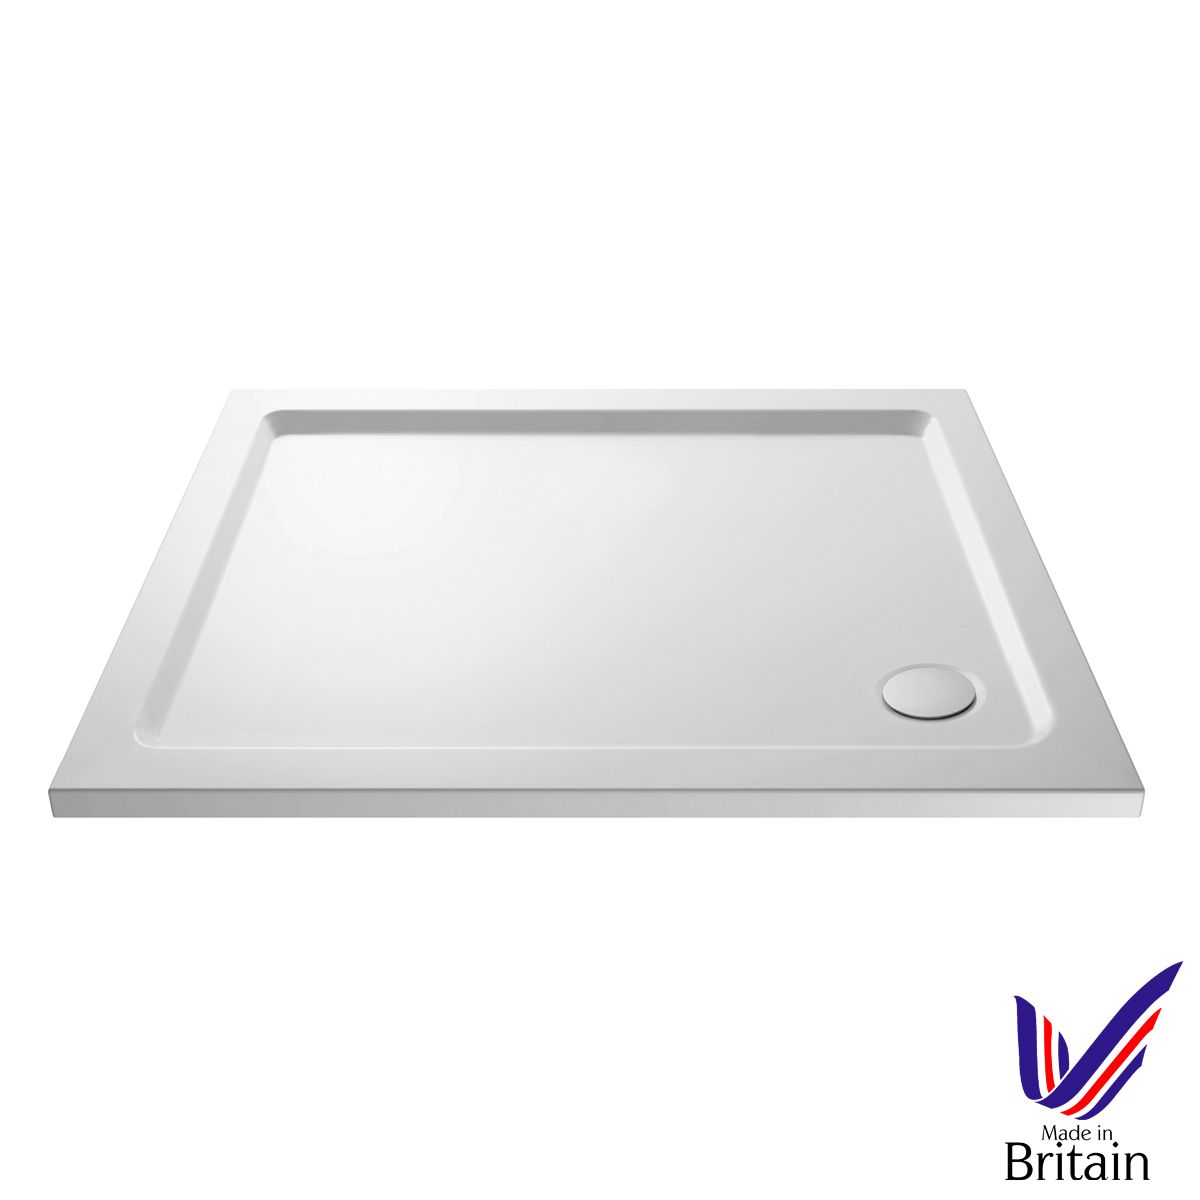 1100 x 900 Shower Tray Rectangular Low Profile by Pearlstone